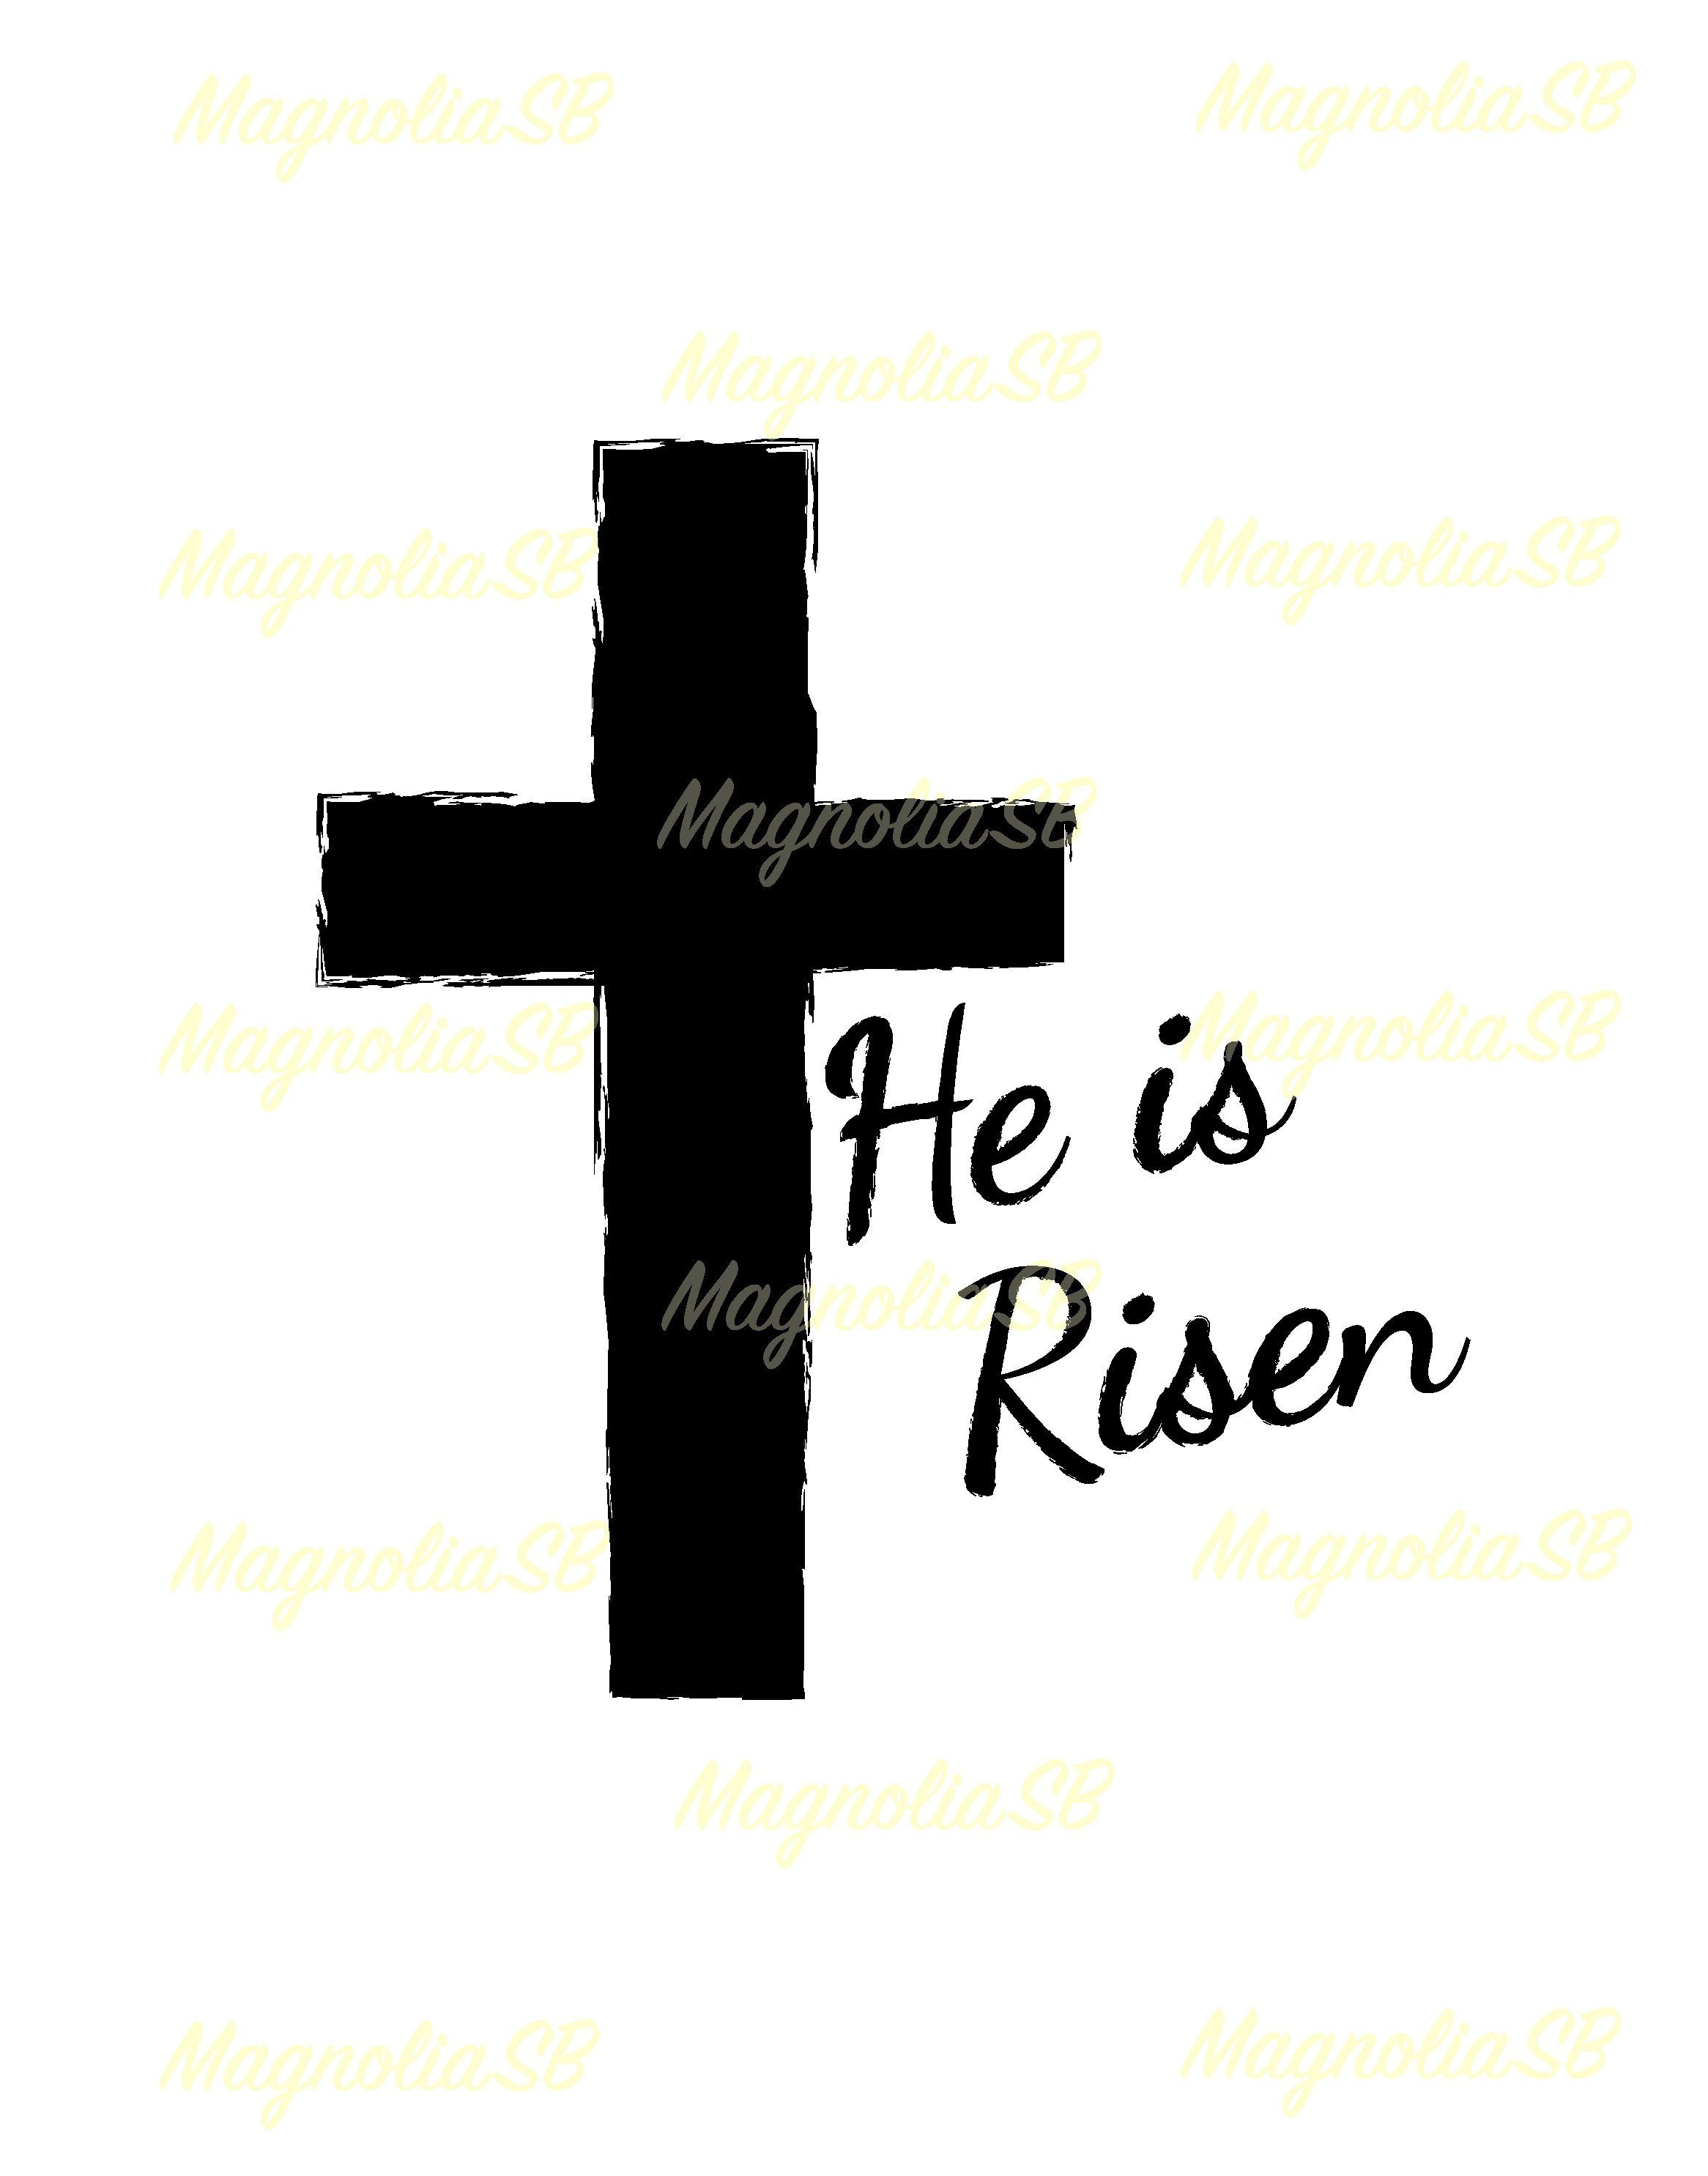 small resolution of he is risen svg he is risen dxf he is risen clipart cutting easter he is risen vector he is risen shape he is risen silhouette